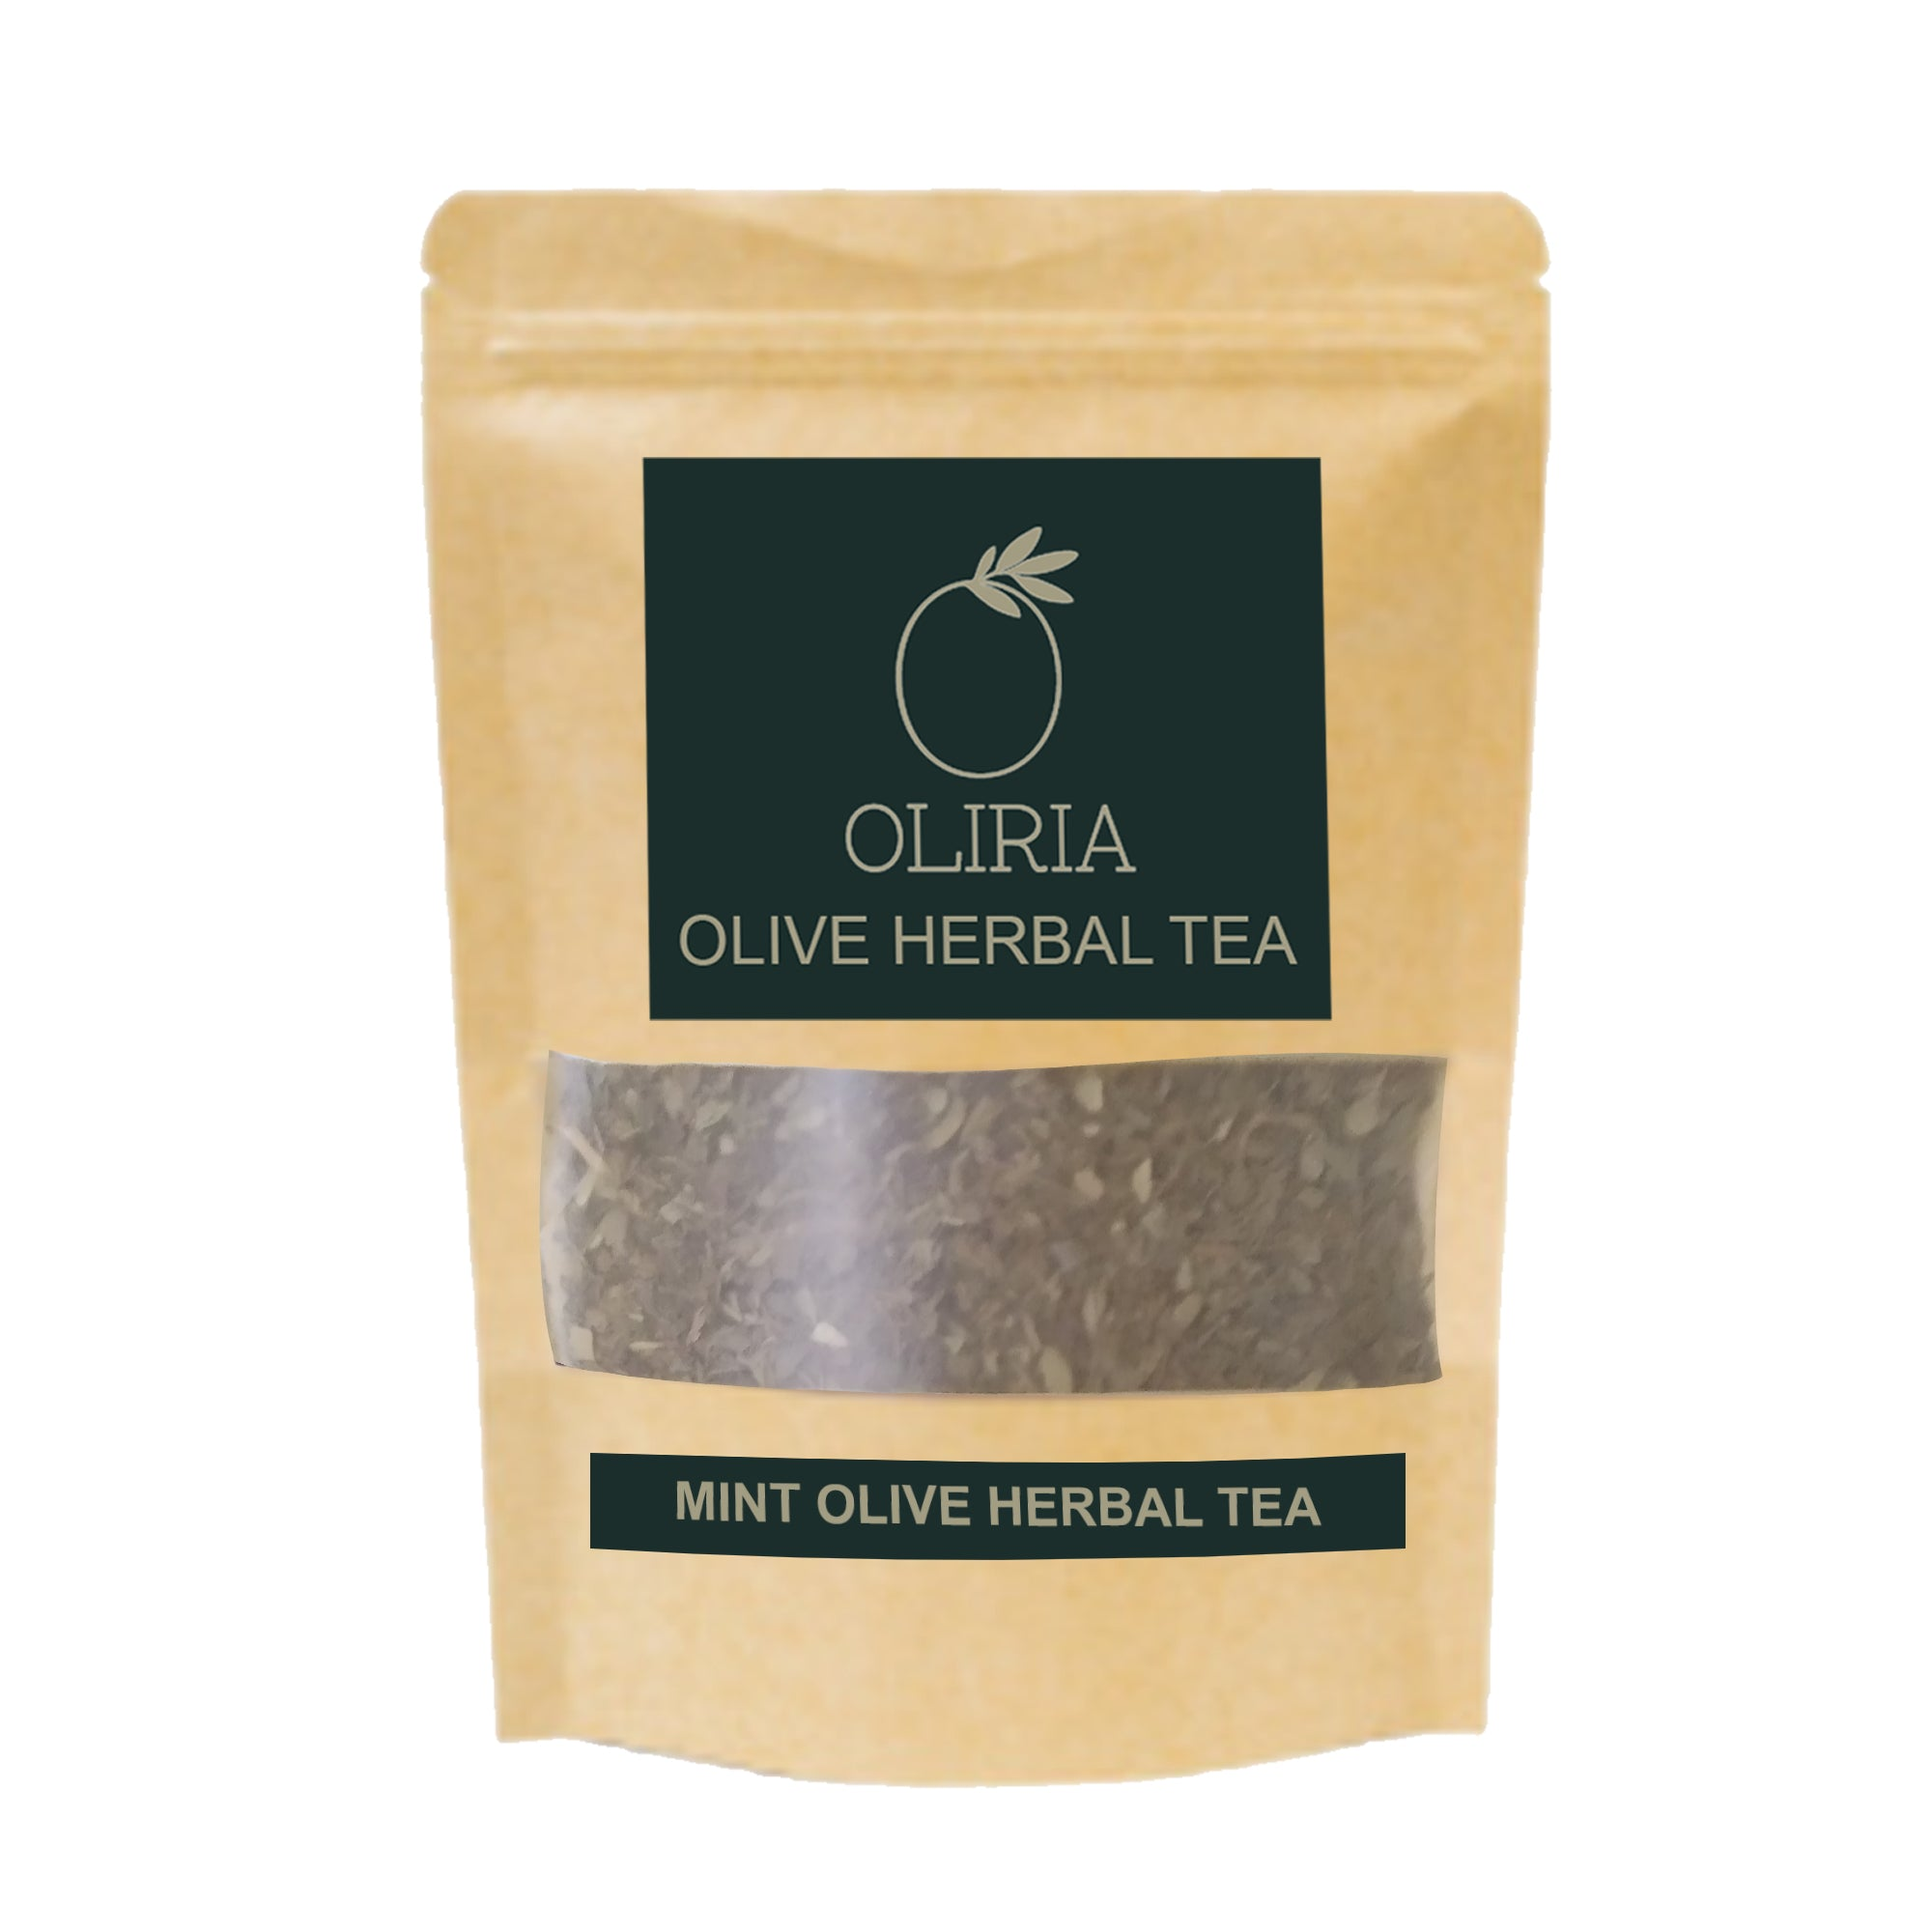 OLIRIA™ Mint Natural Olive Green Tea Loose Packing 100g